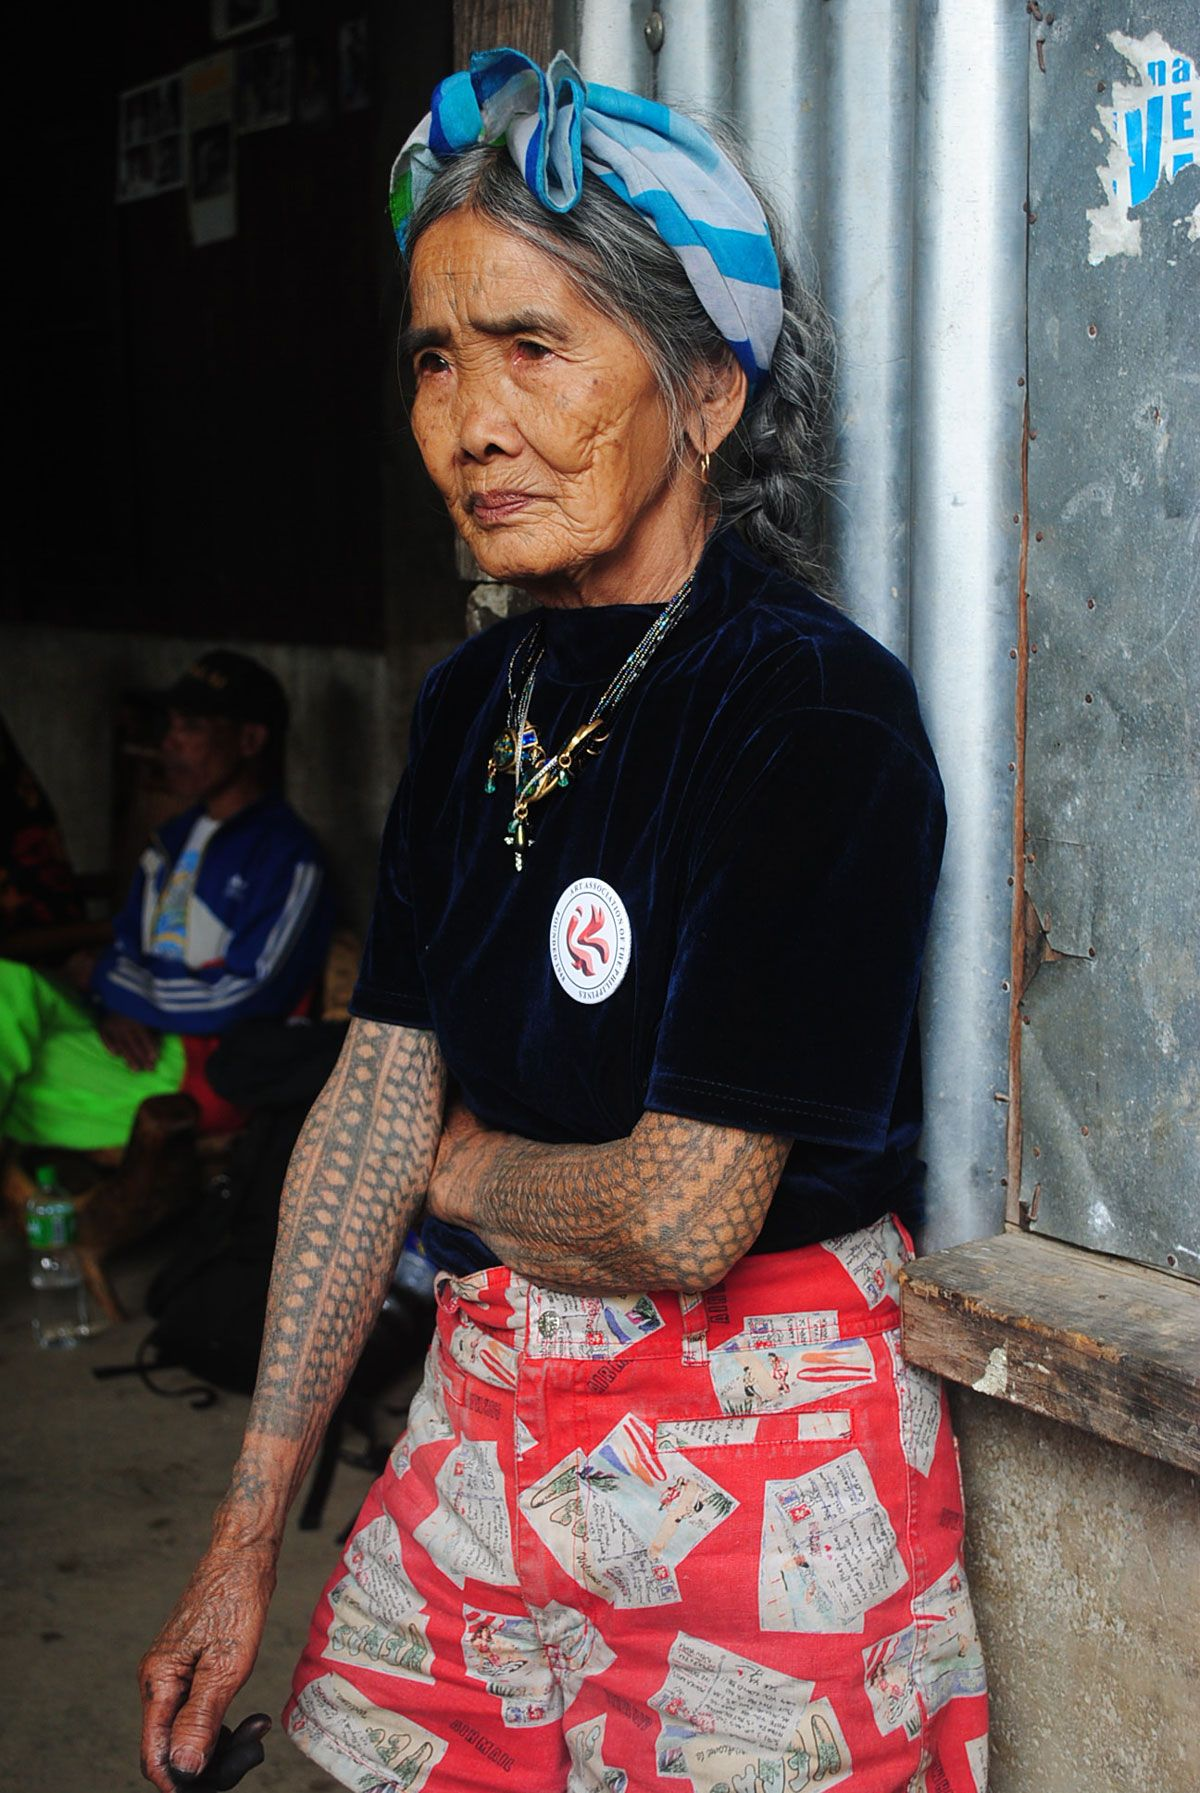 95 Best Justice Images On Pinterest: 95-Year Old Tattoo Artist From The Philippines …